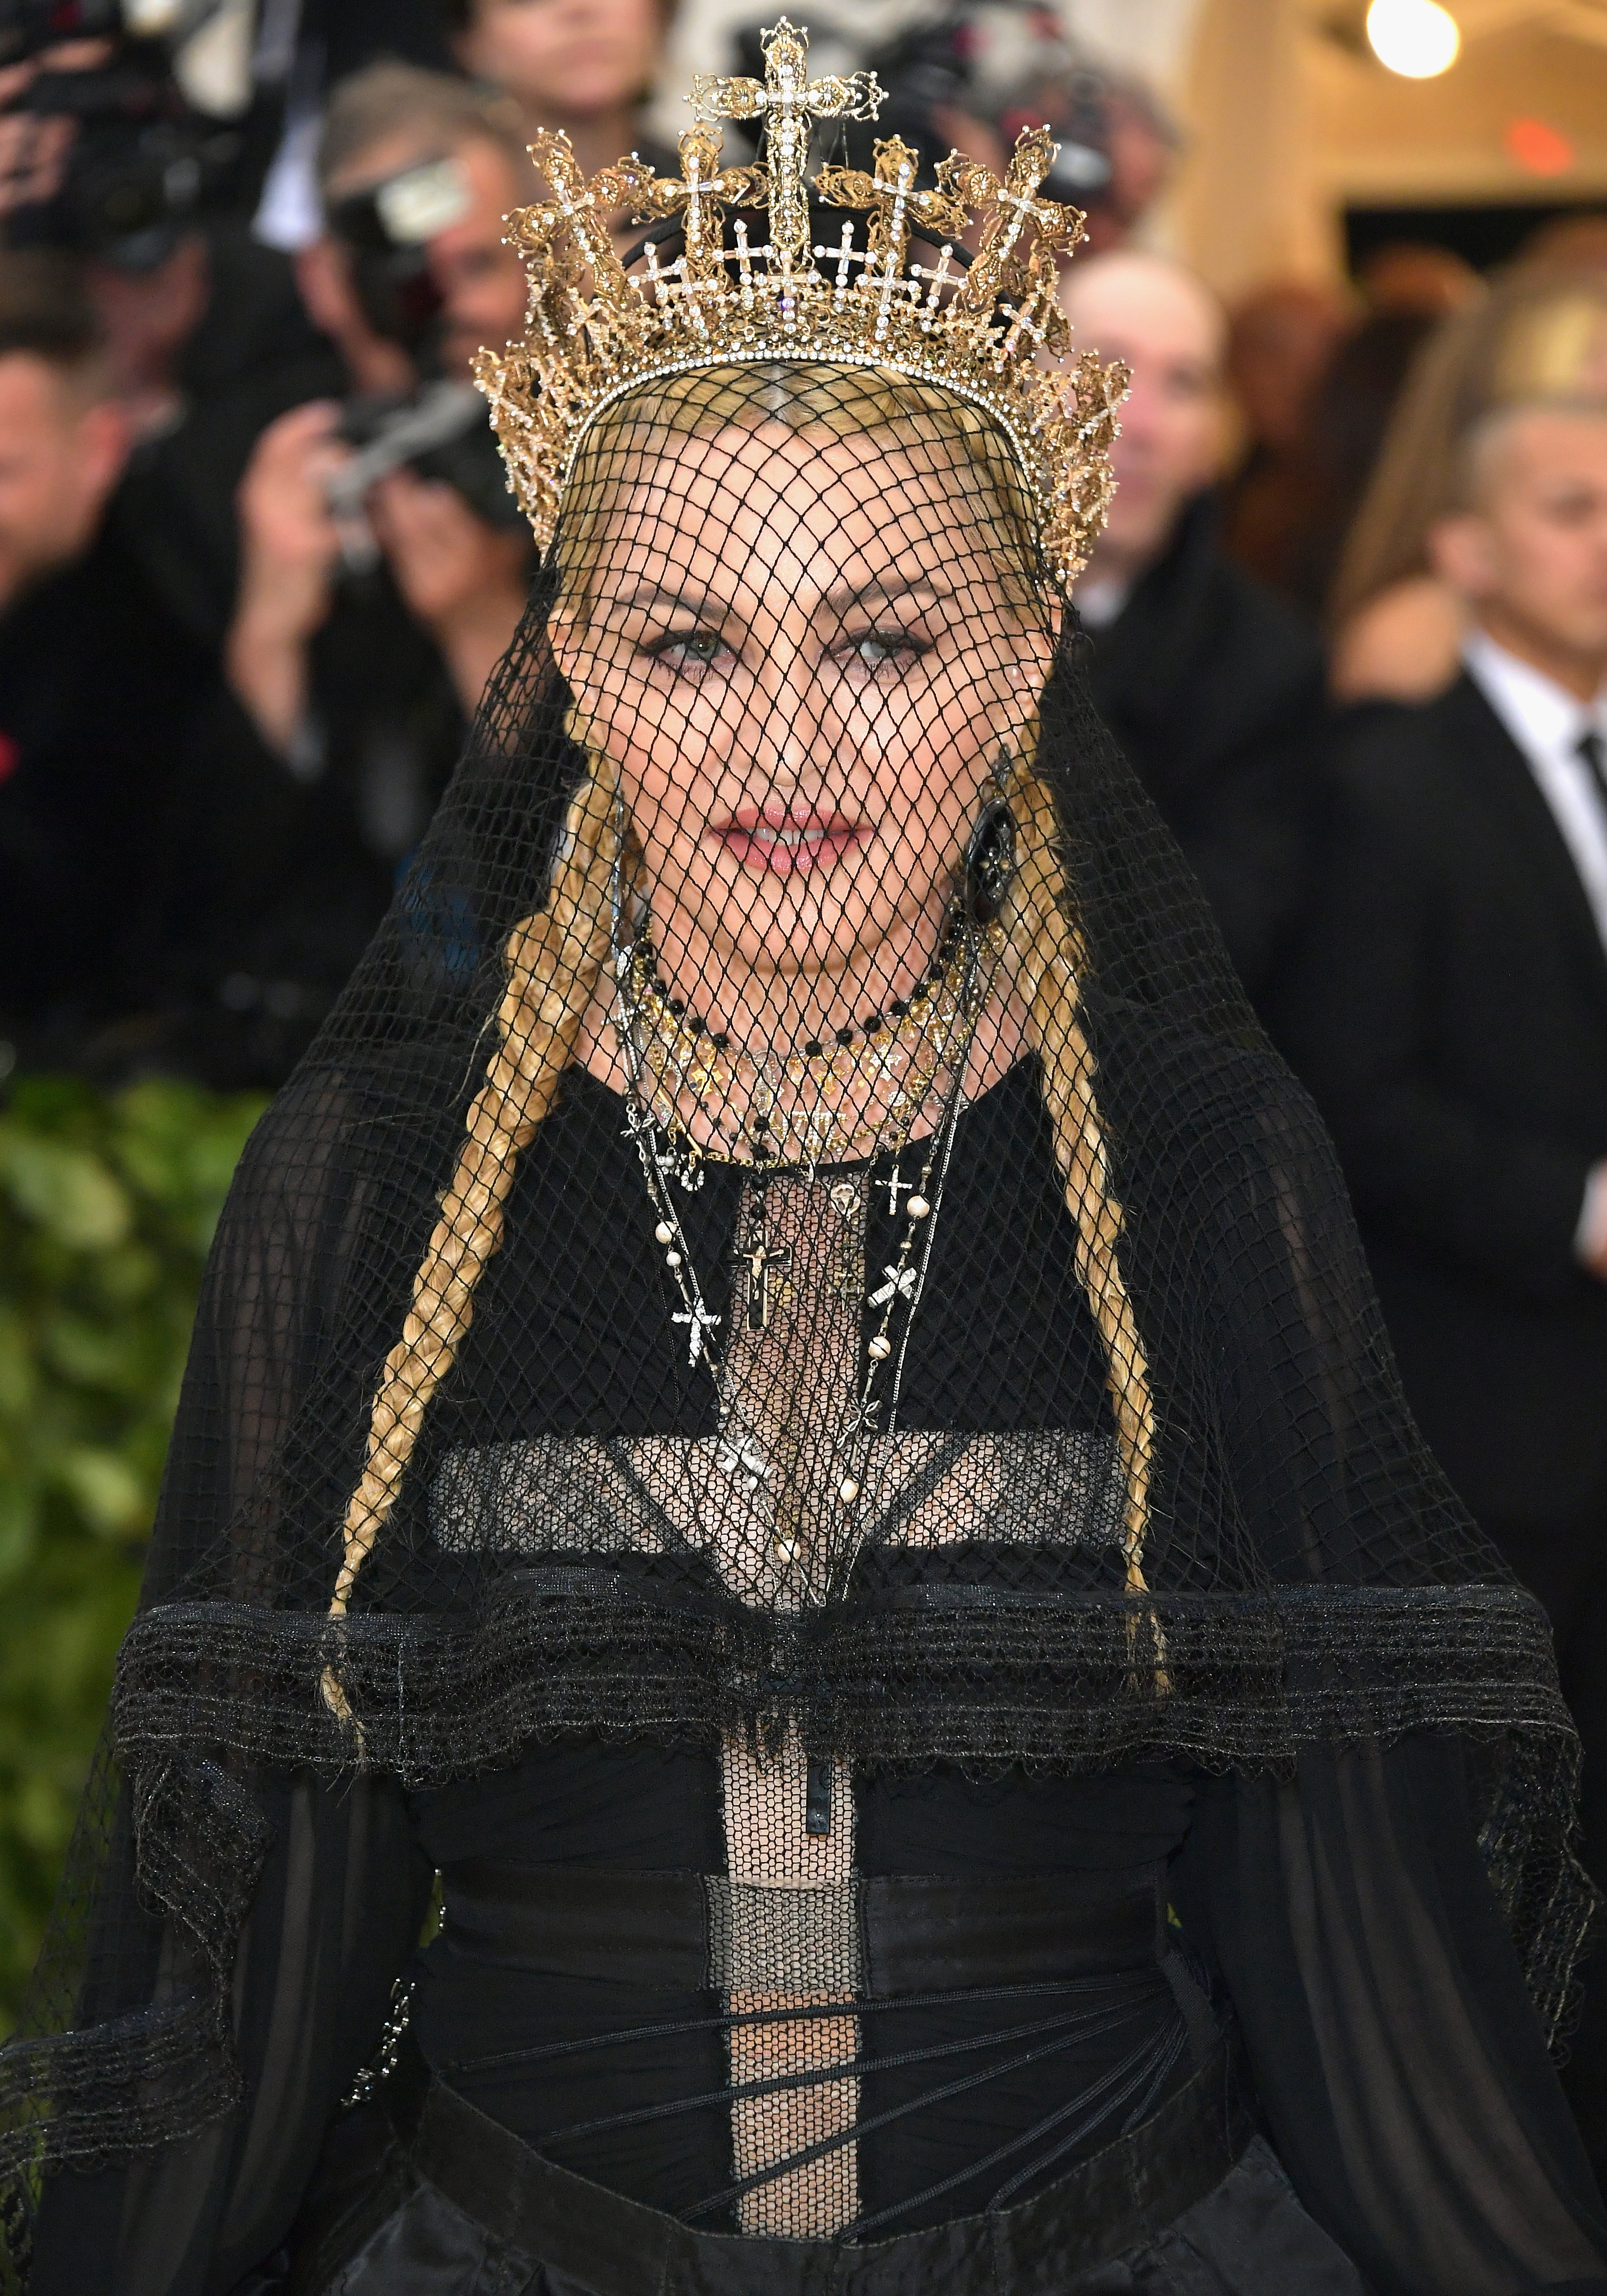 Madonna attends the Heavenly Bodies: Fashion & The Catholic Imagination Costume Institute Gala at The Metropolitan Museum of Art on May 7, 2018 in New York City. (Photo by Neilson Barnard/Getty Images)